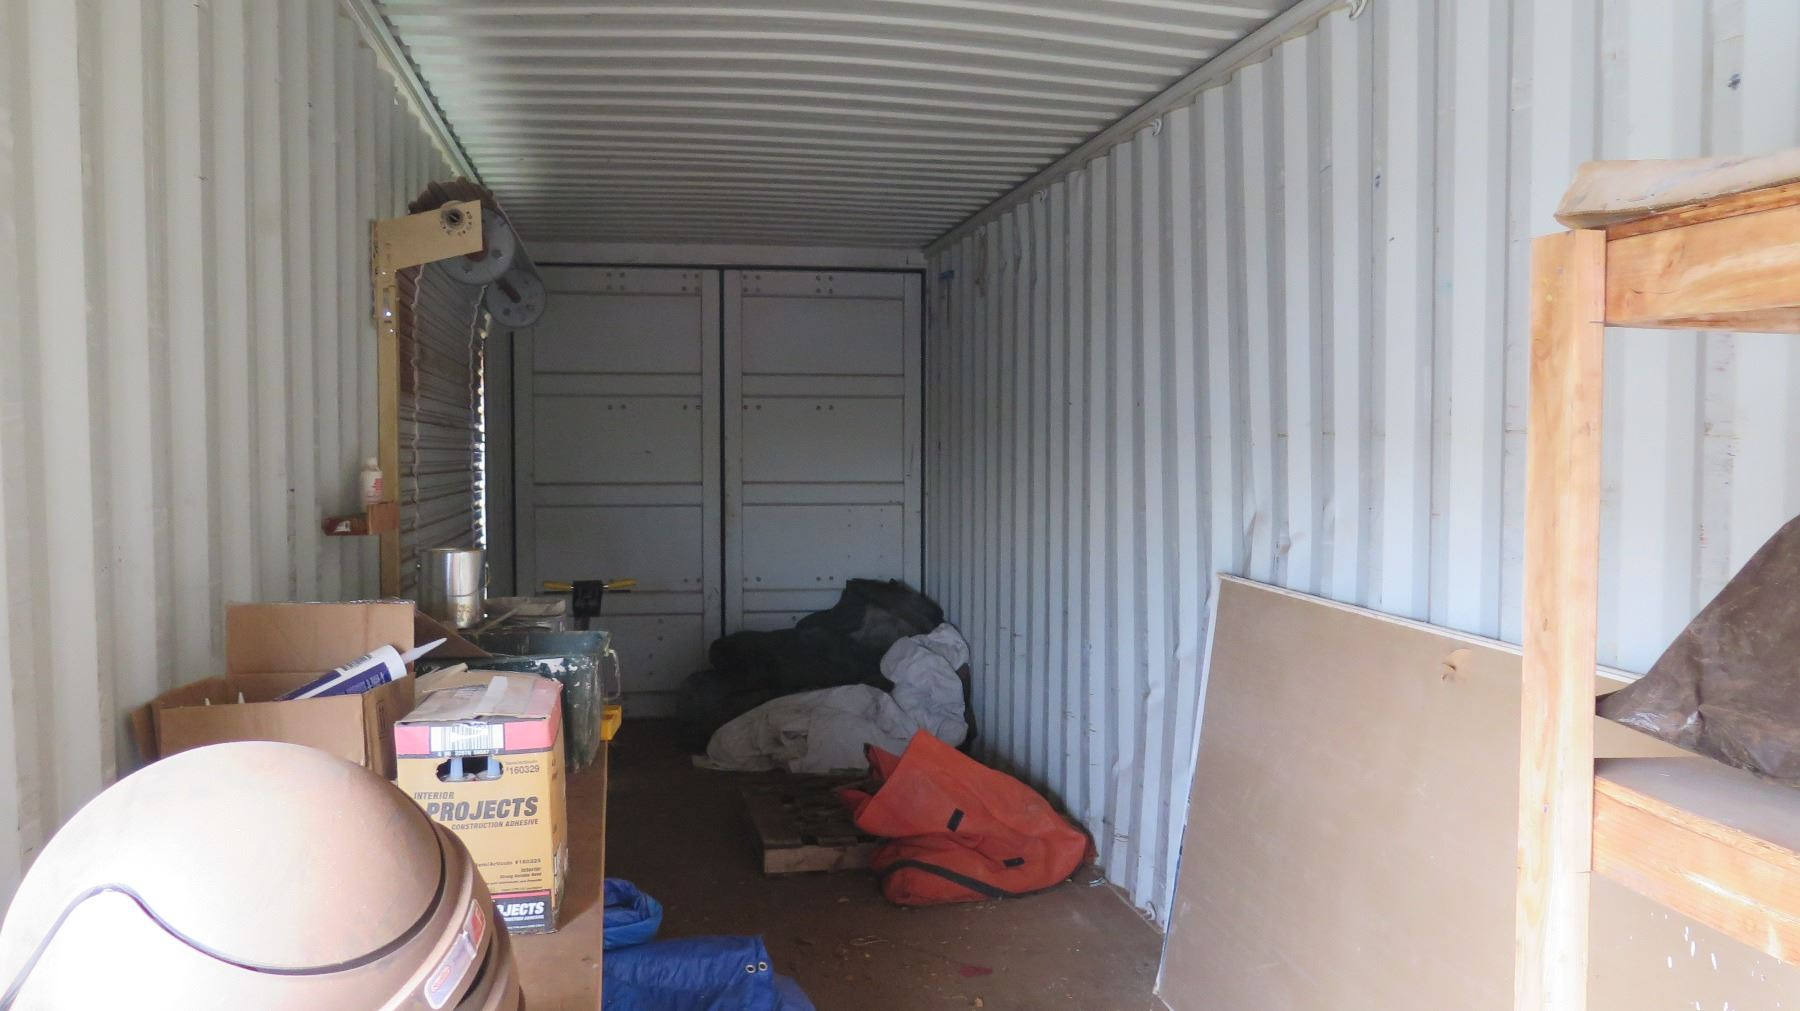 ... Image 4 : 40 Foot Container, Roll Up Doors (contents Not Included)